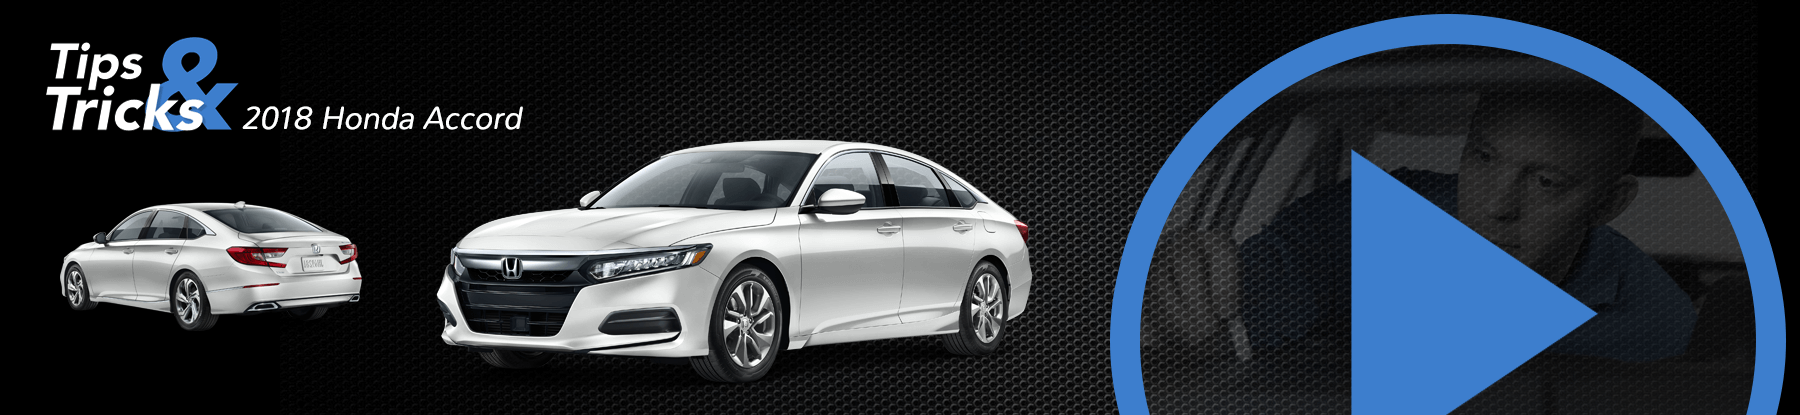 2018 Honda Accord Tips and Tricks Banner